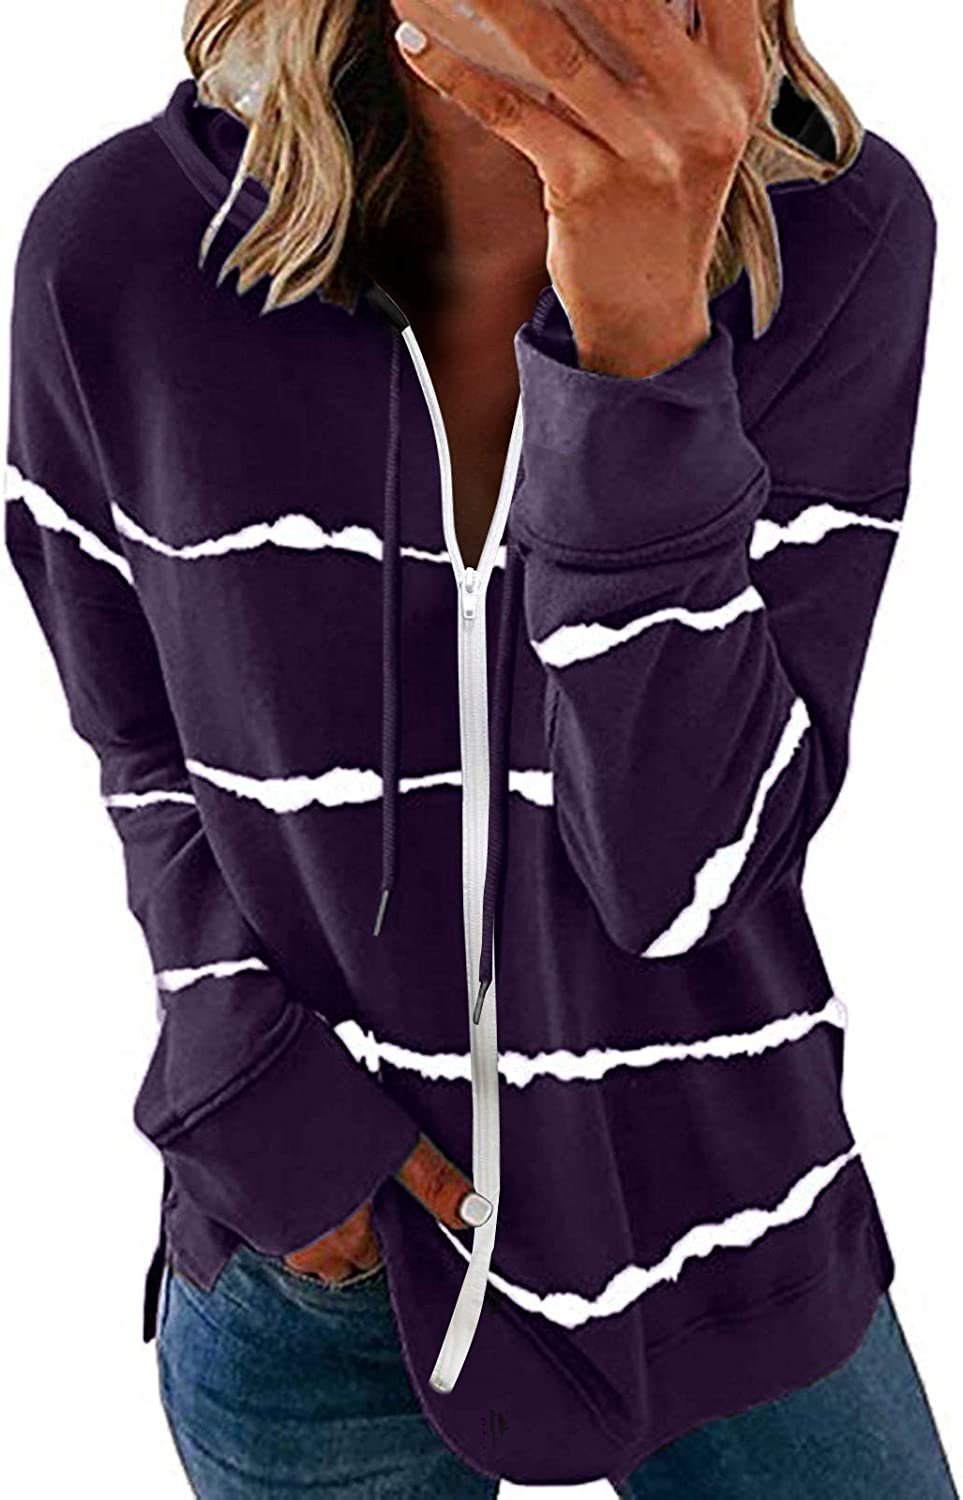 Qisemi Zip Up Hoodies Time sale Don't miss the campaign for Hooded Women Jackets Lightweight Strip